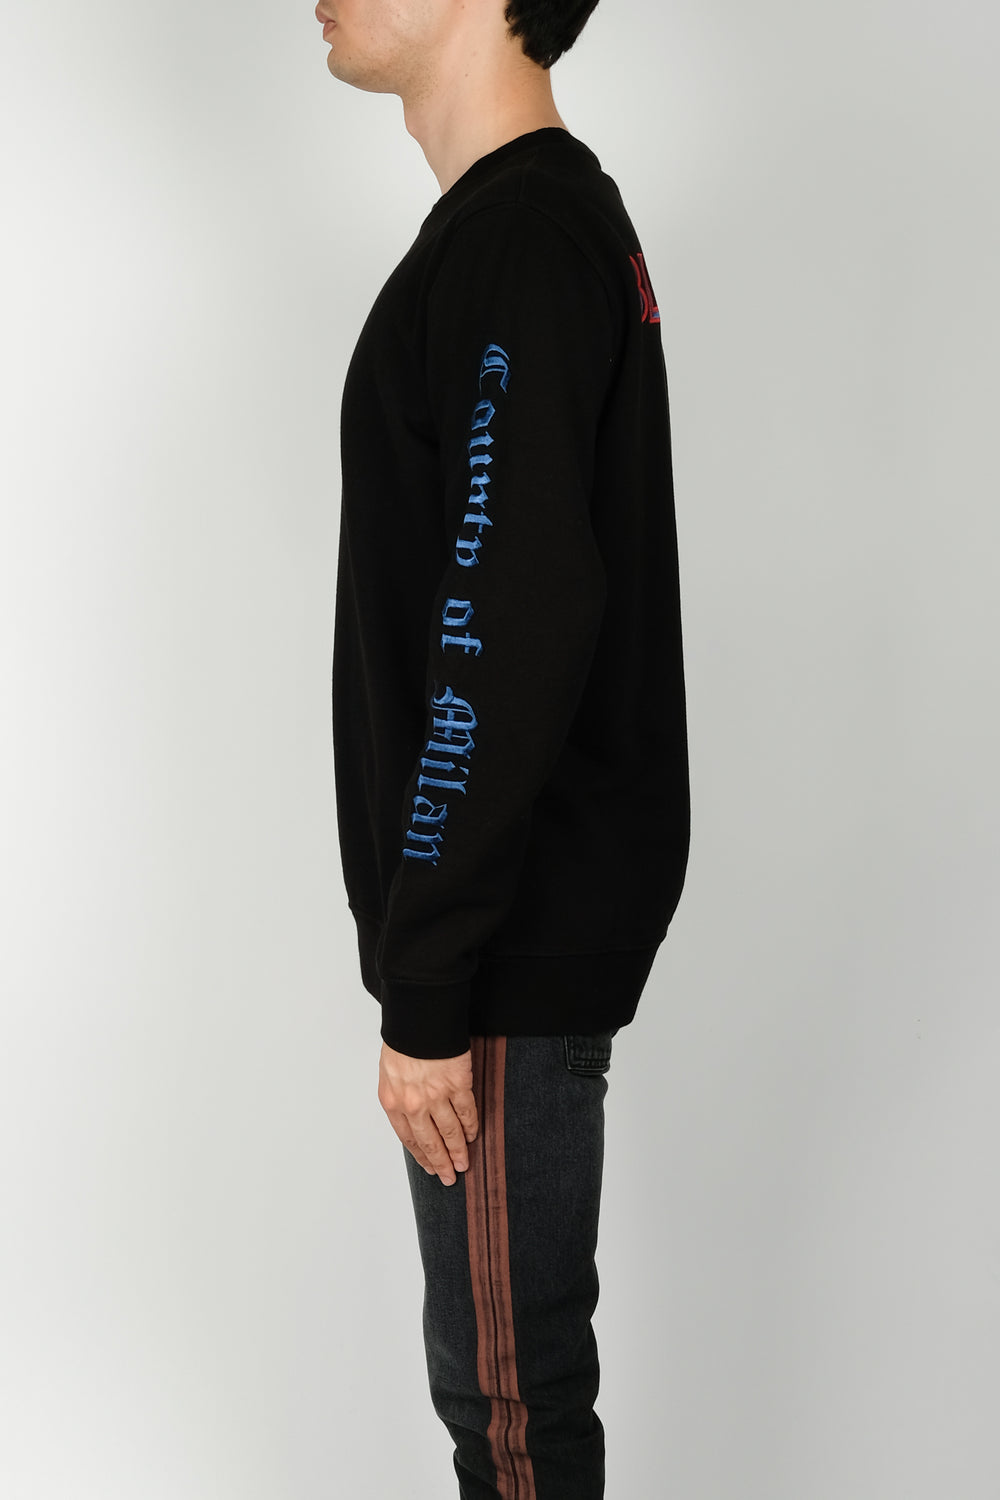 Marcelo Burlon TO Blue Jays Crewneck In Black